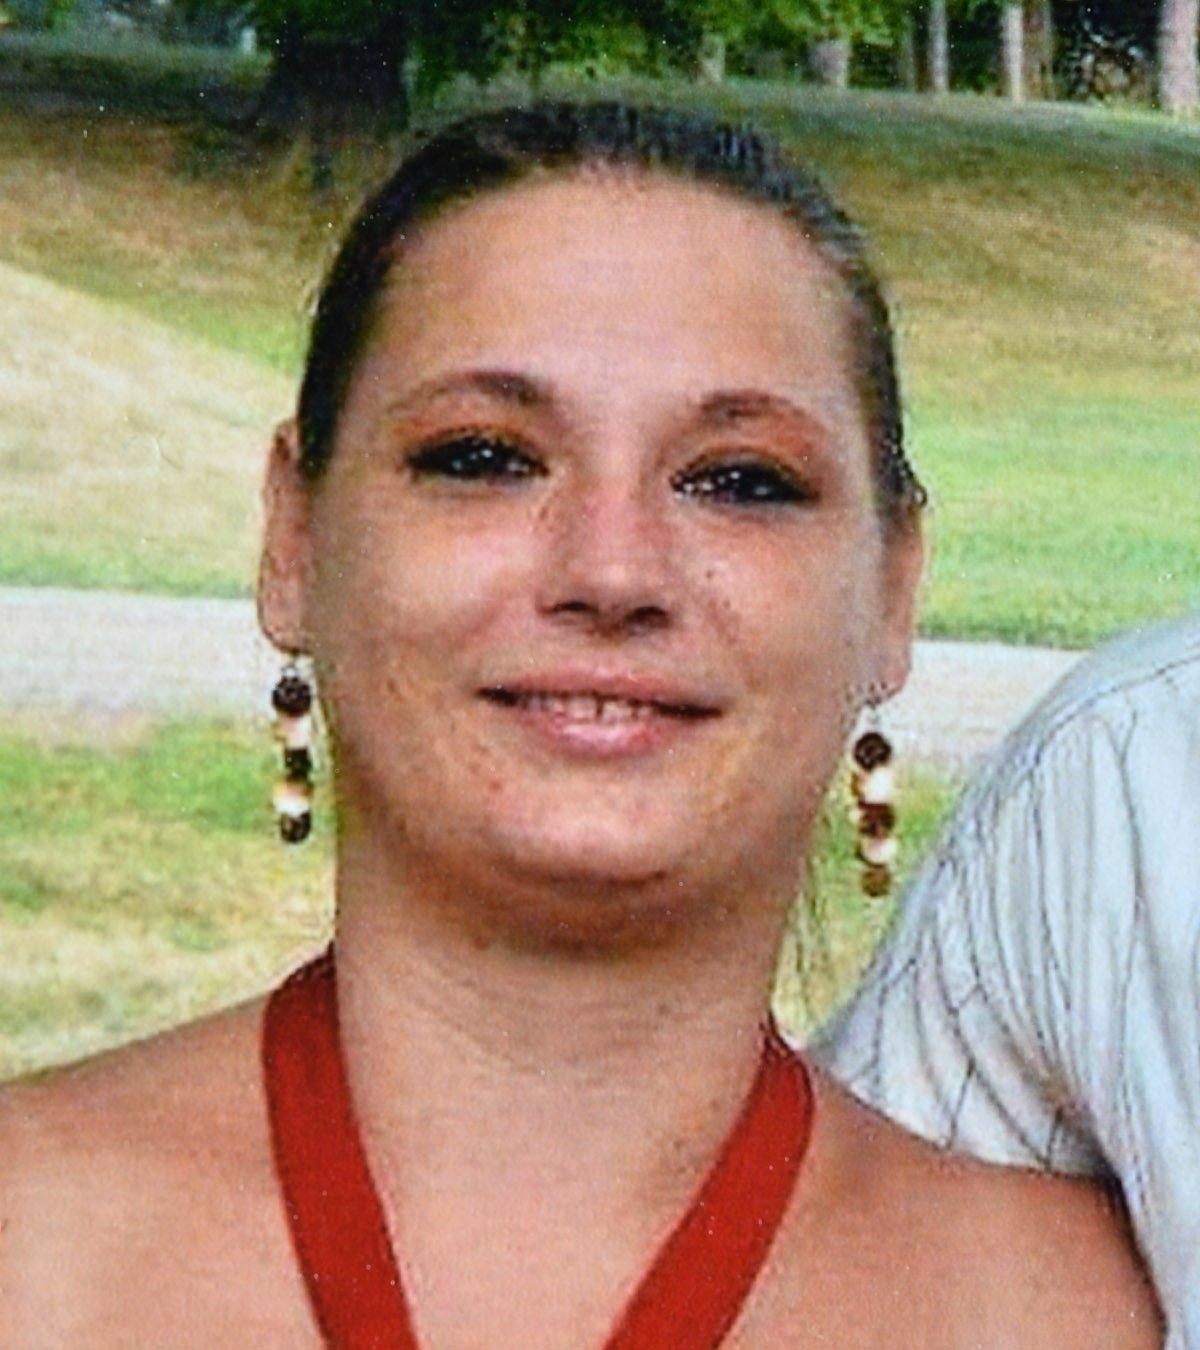 This is a summer 2011 contributed photo of April Corritore, who died at 33 on Oct. 20. Corritore had been in the Erie County Prison for about a month when an infection spread to her heart. The infection was the cause of death, according to the Erie County Coroner.